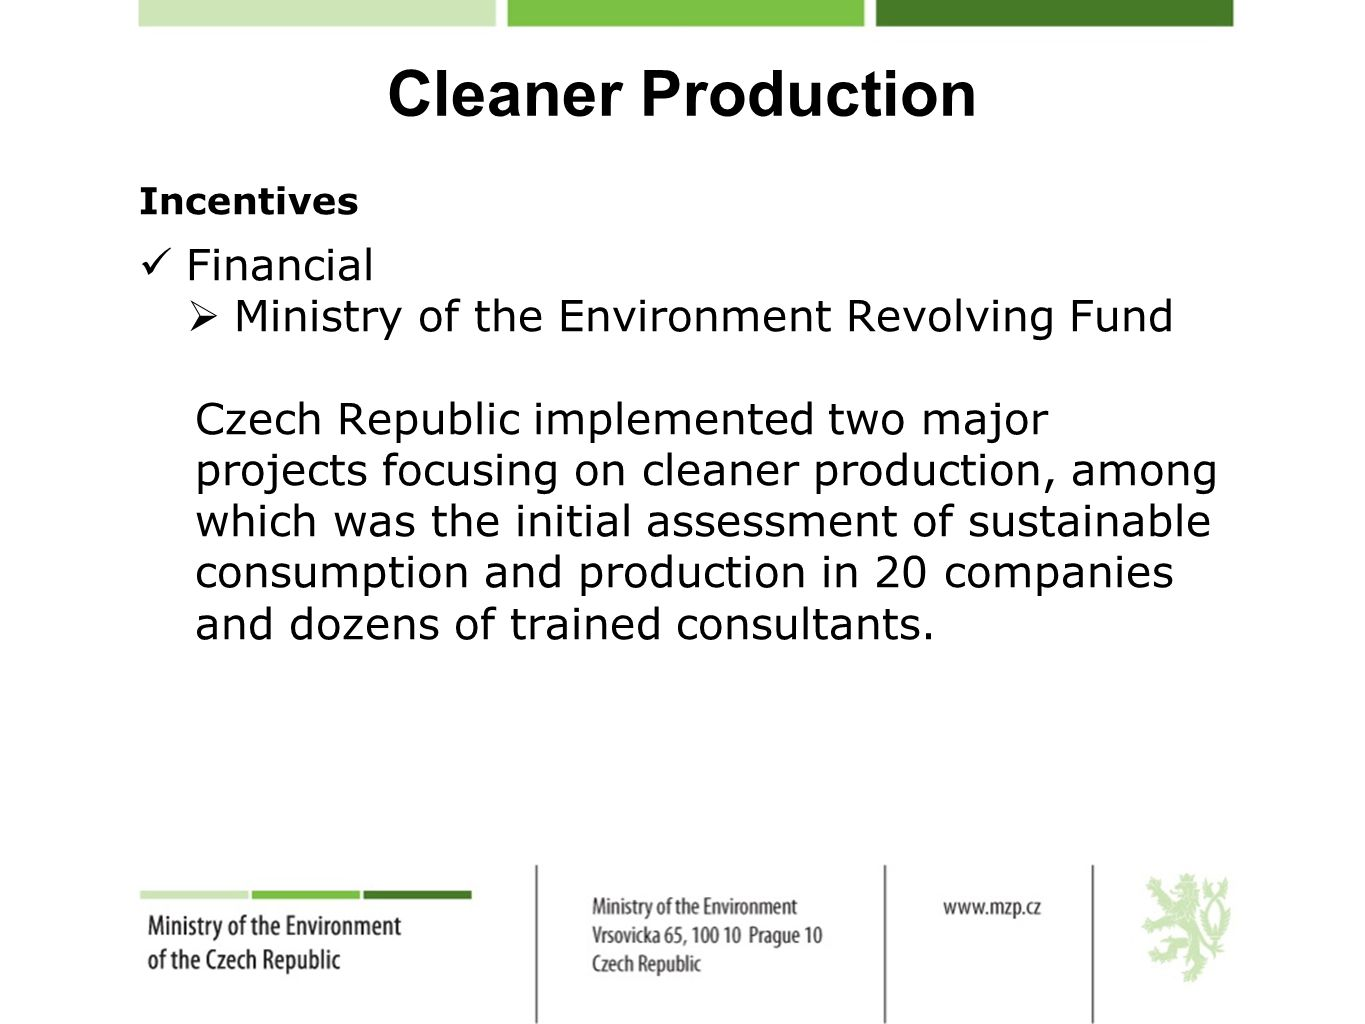 Cleaner Production Incentives Financial  Ministry of the Environment Revolving Fund Czech Republic implemented two major projects focusing on cleaner production, among which was the initial assessment of sustainable consumption and production in 20 companies and dozens of trained consultants.